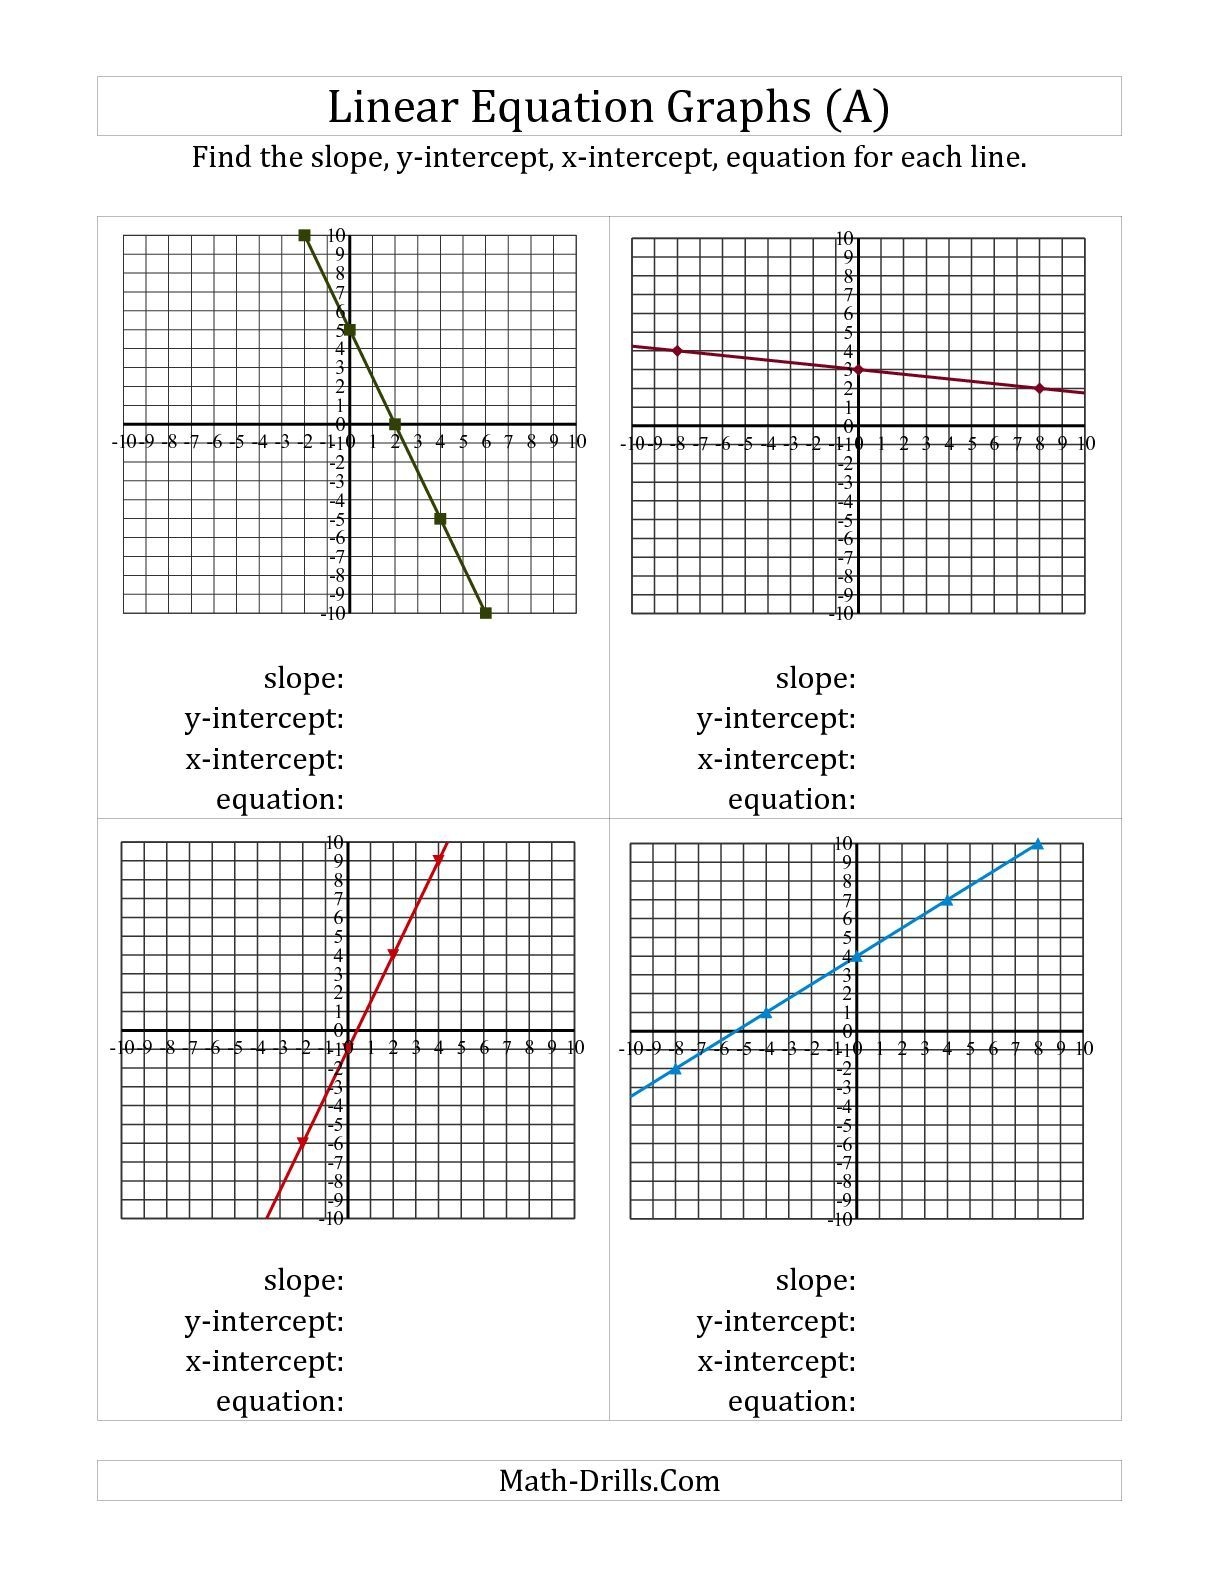 Linear Equations Worksheet Algebra 1